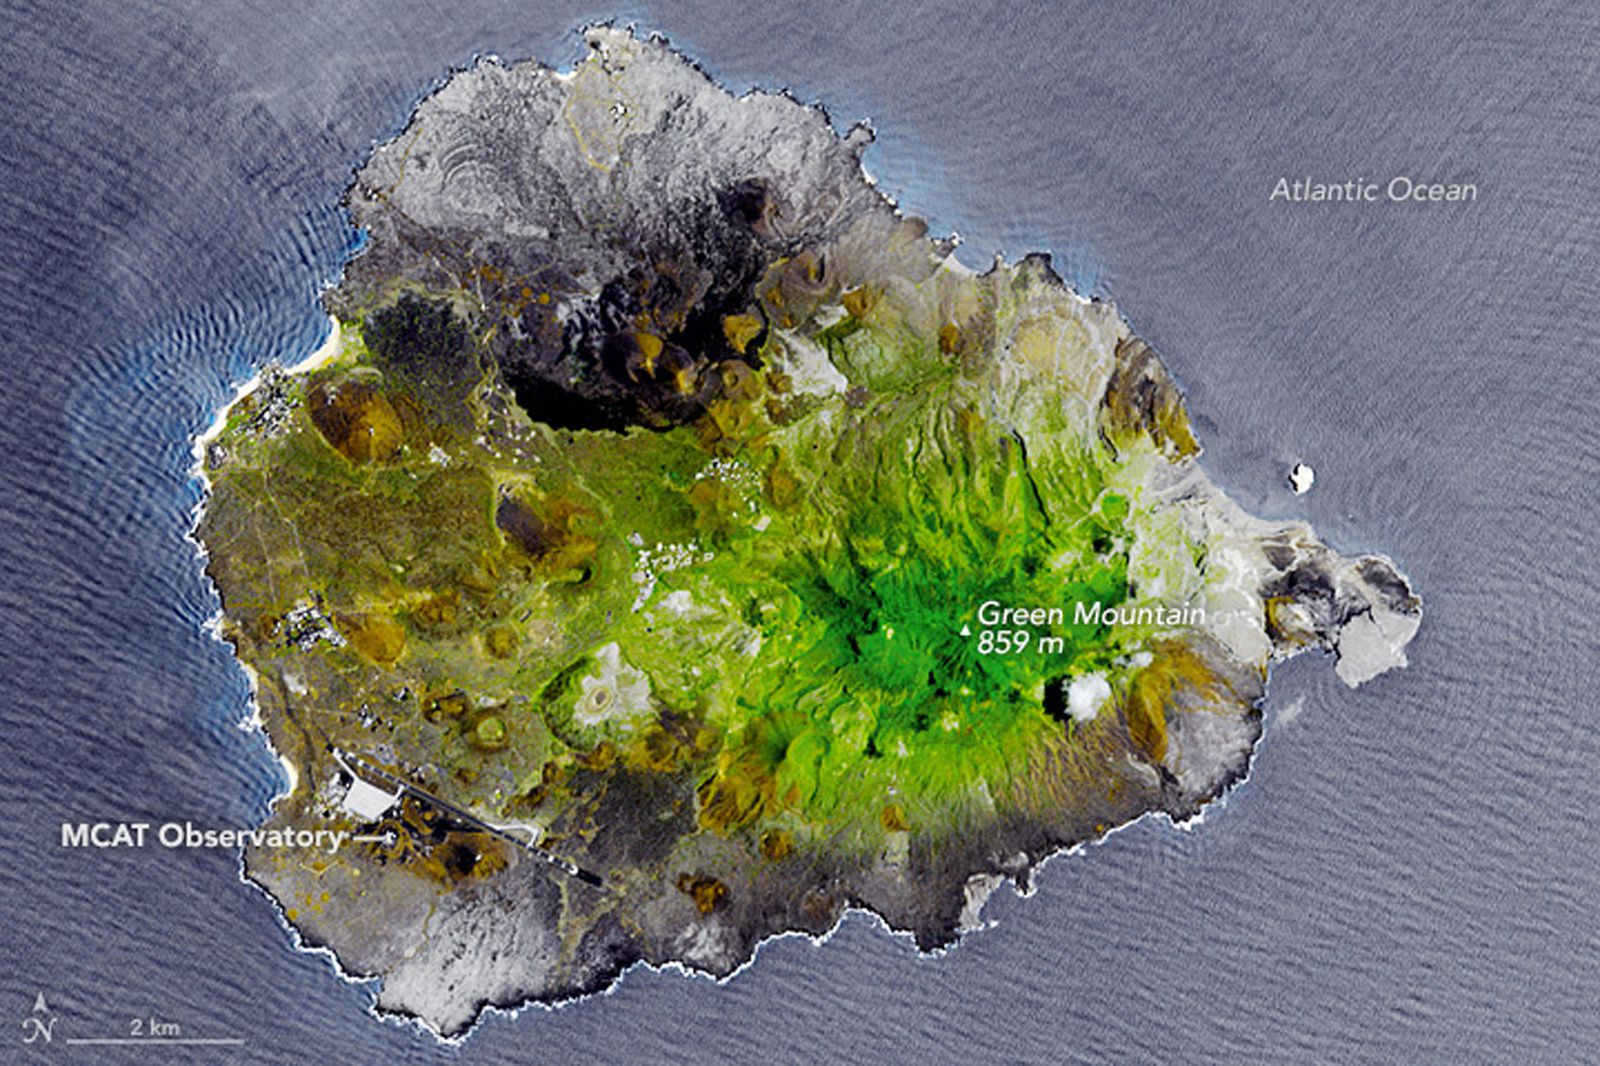 Ascension island  - 11.03.2010 - explications ci-dessous - photo NASA Earth Observatory image by Jesse Allen, using data from NASA/GSFC/METI/ERSDAC/JAROS, and U.S./Japan ASTER Science Team. Caption by Adam Voiland.